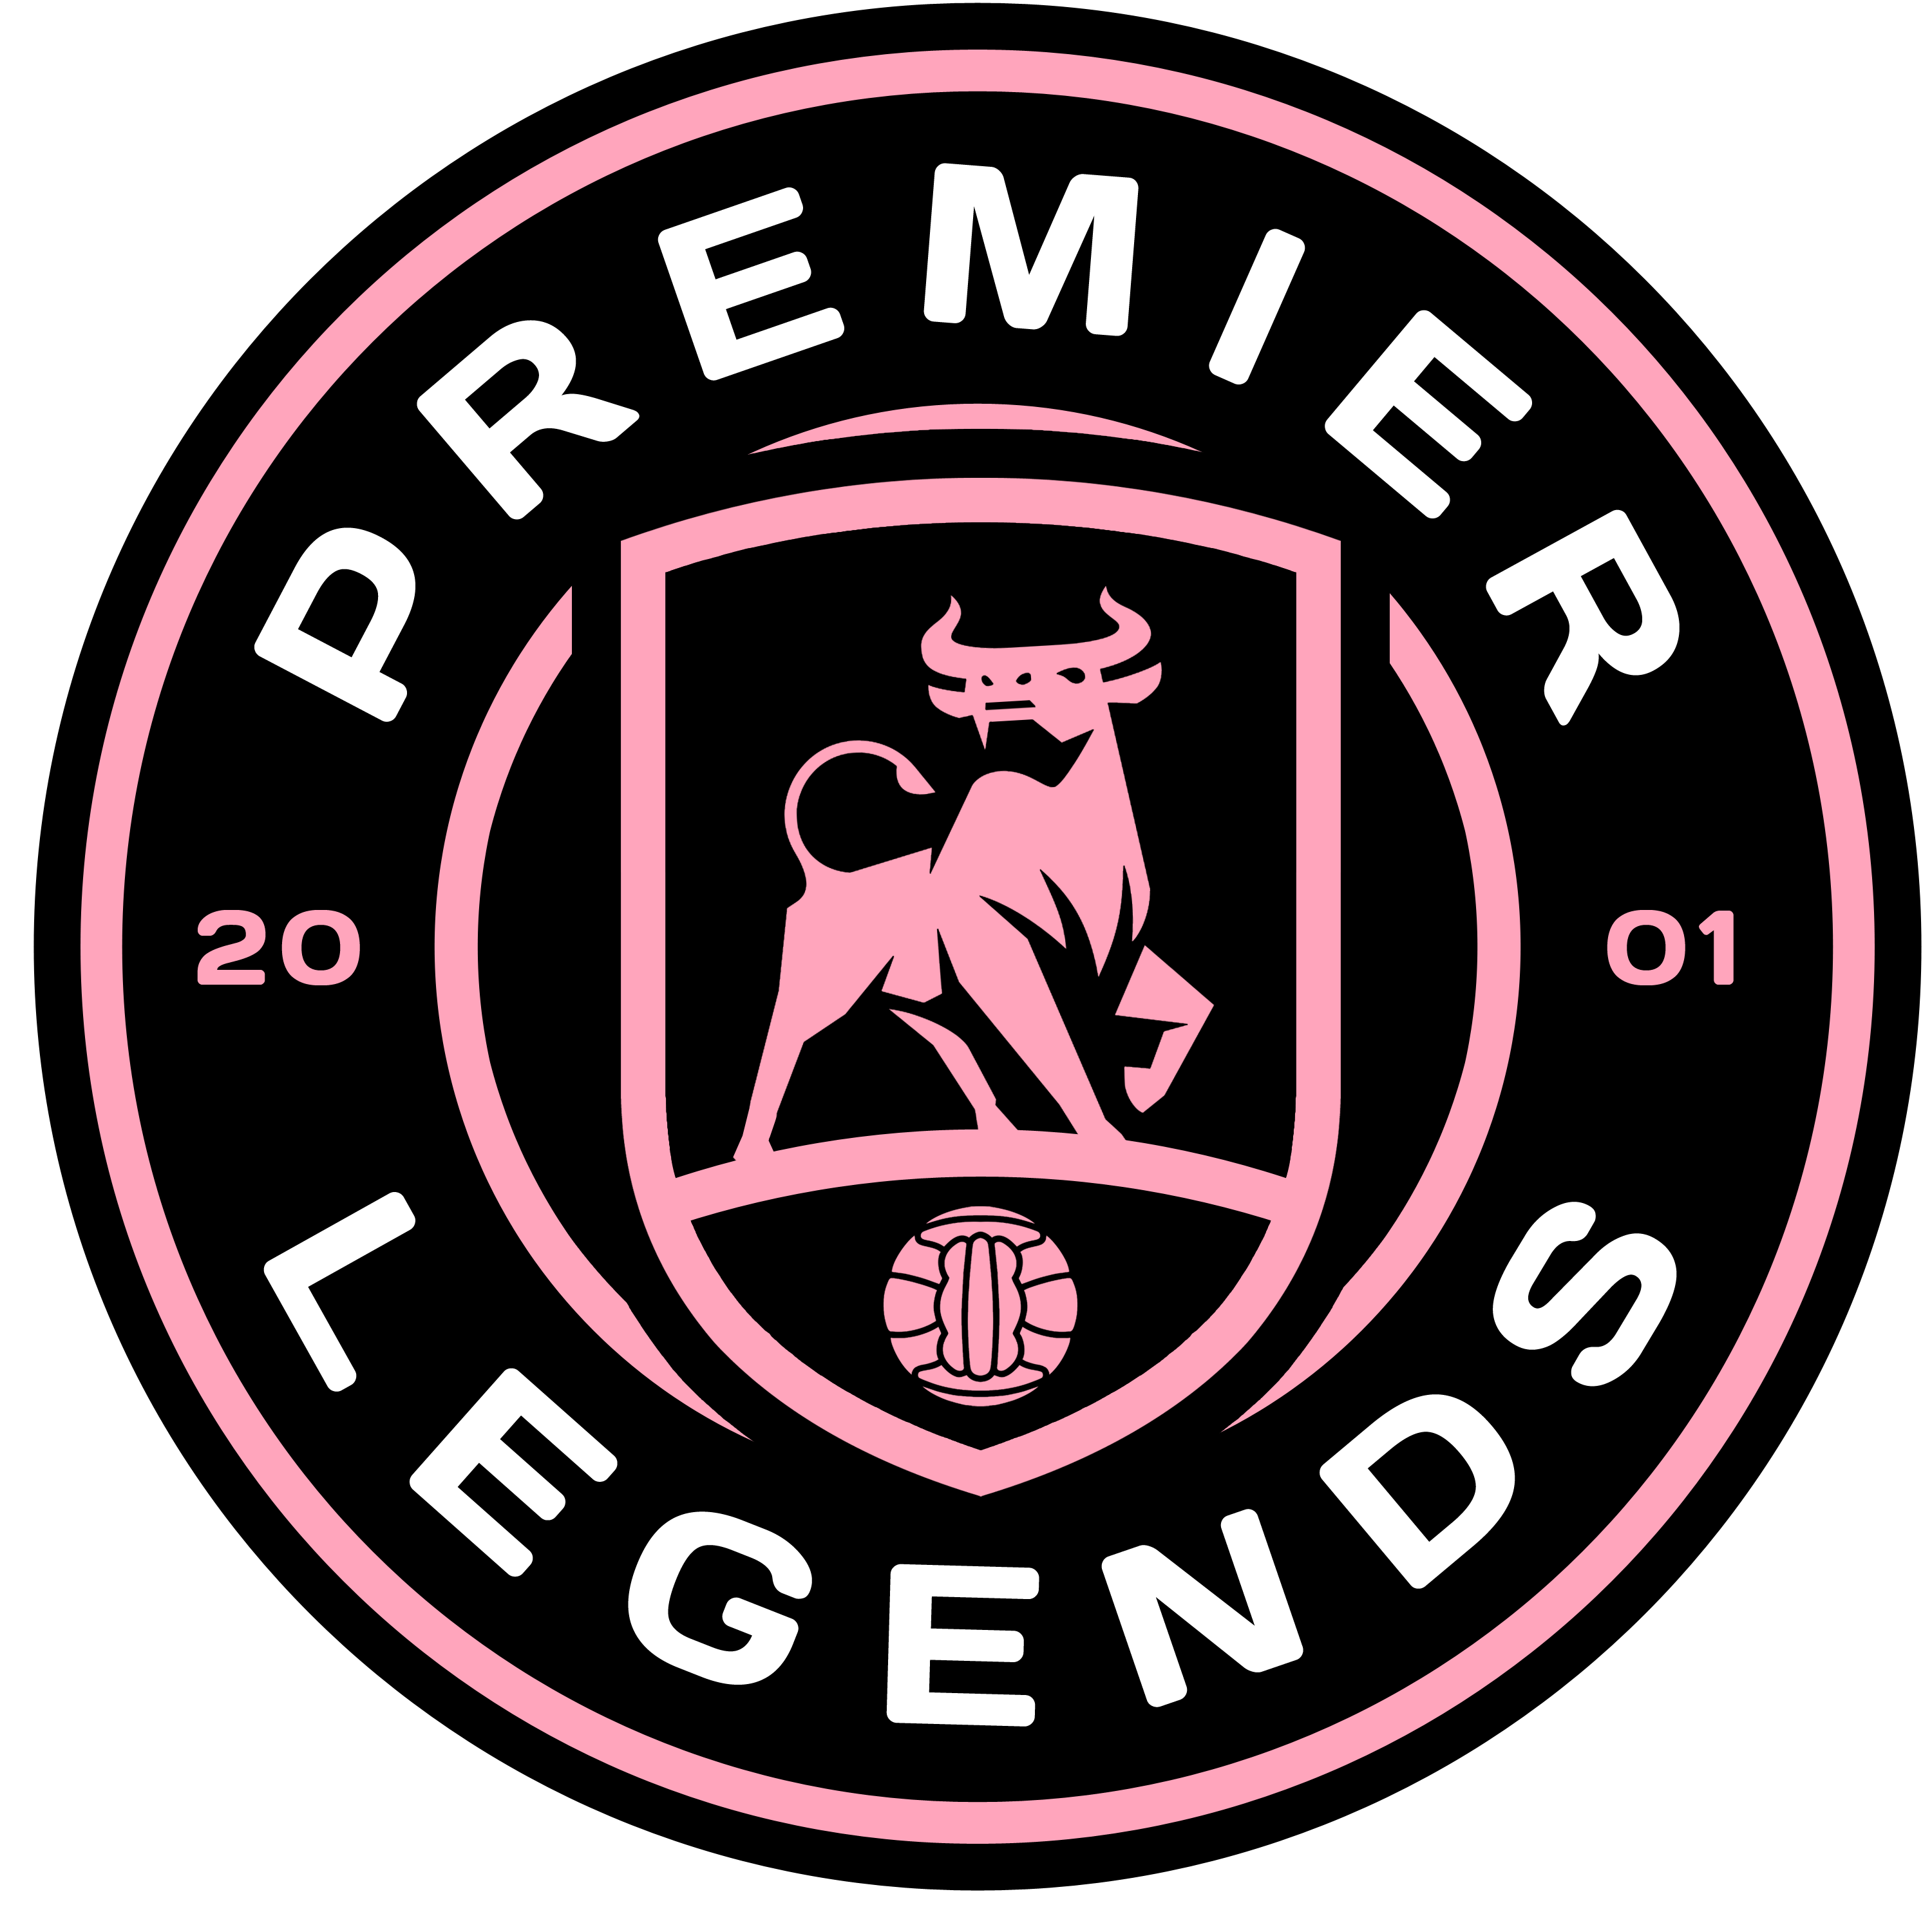 Premier Legends